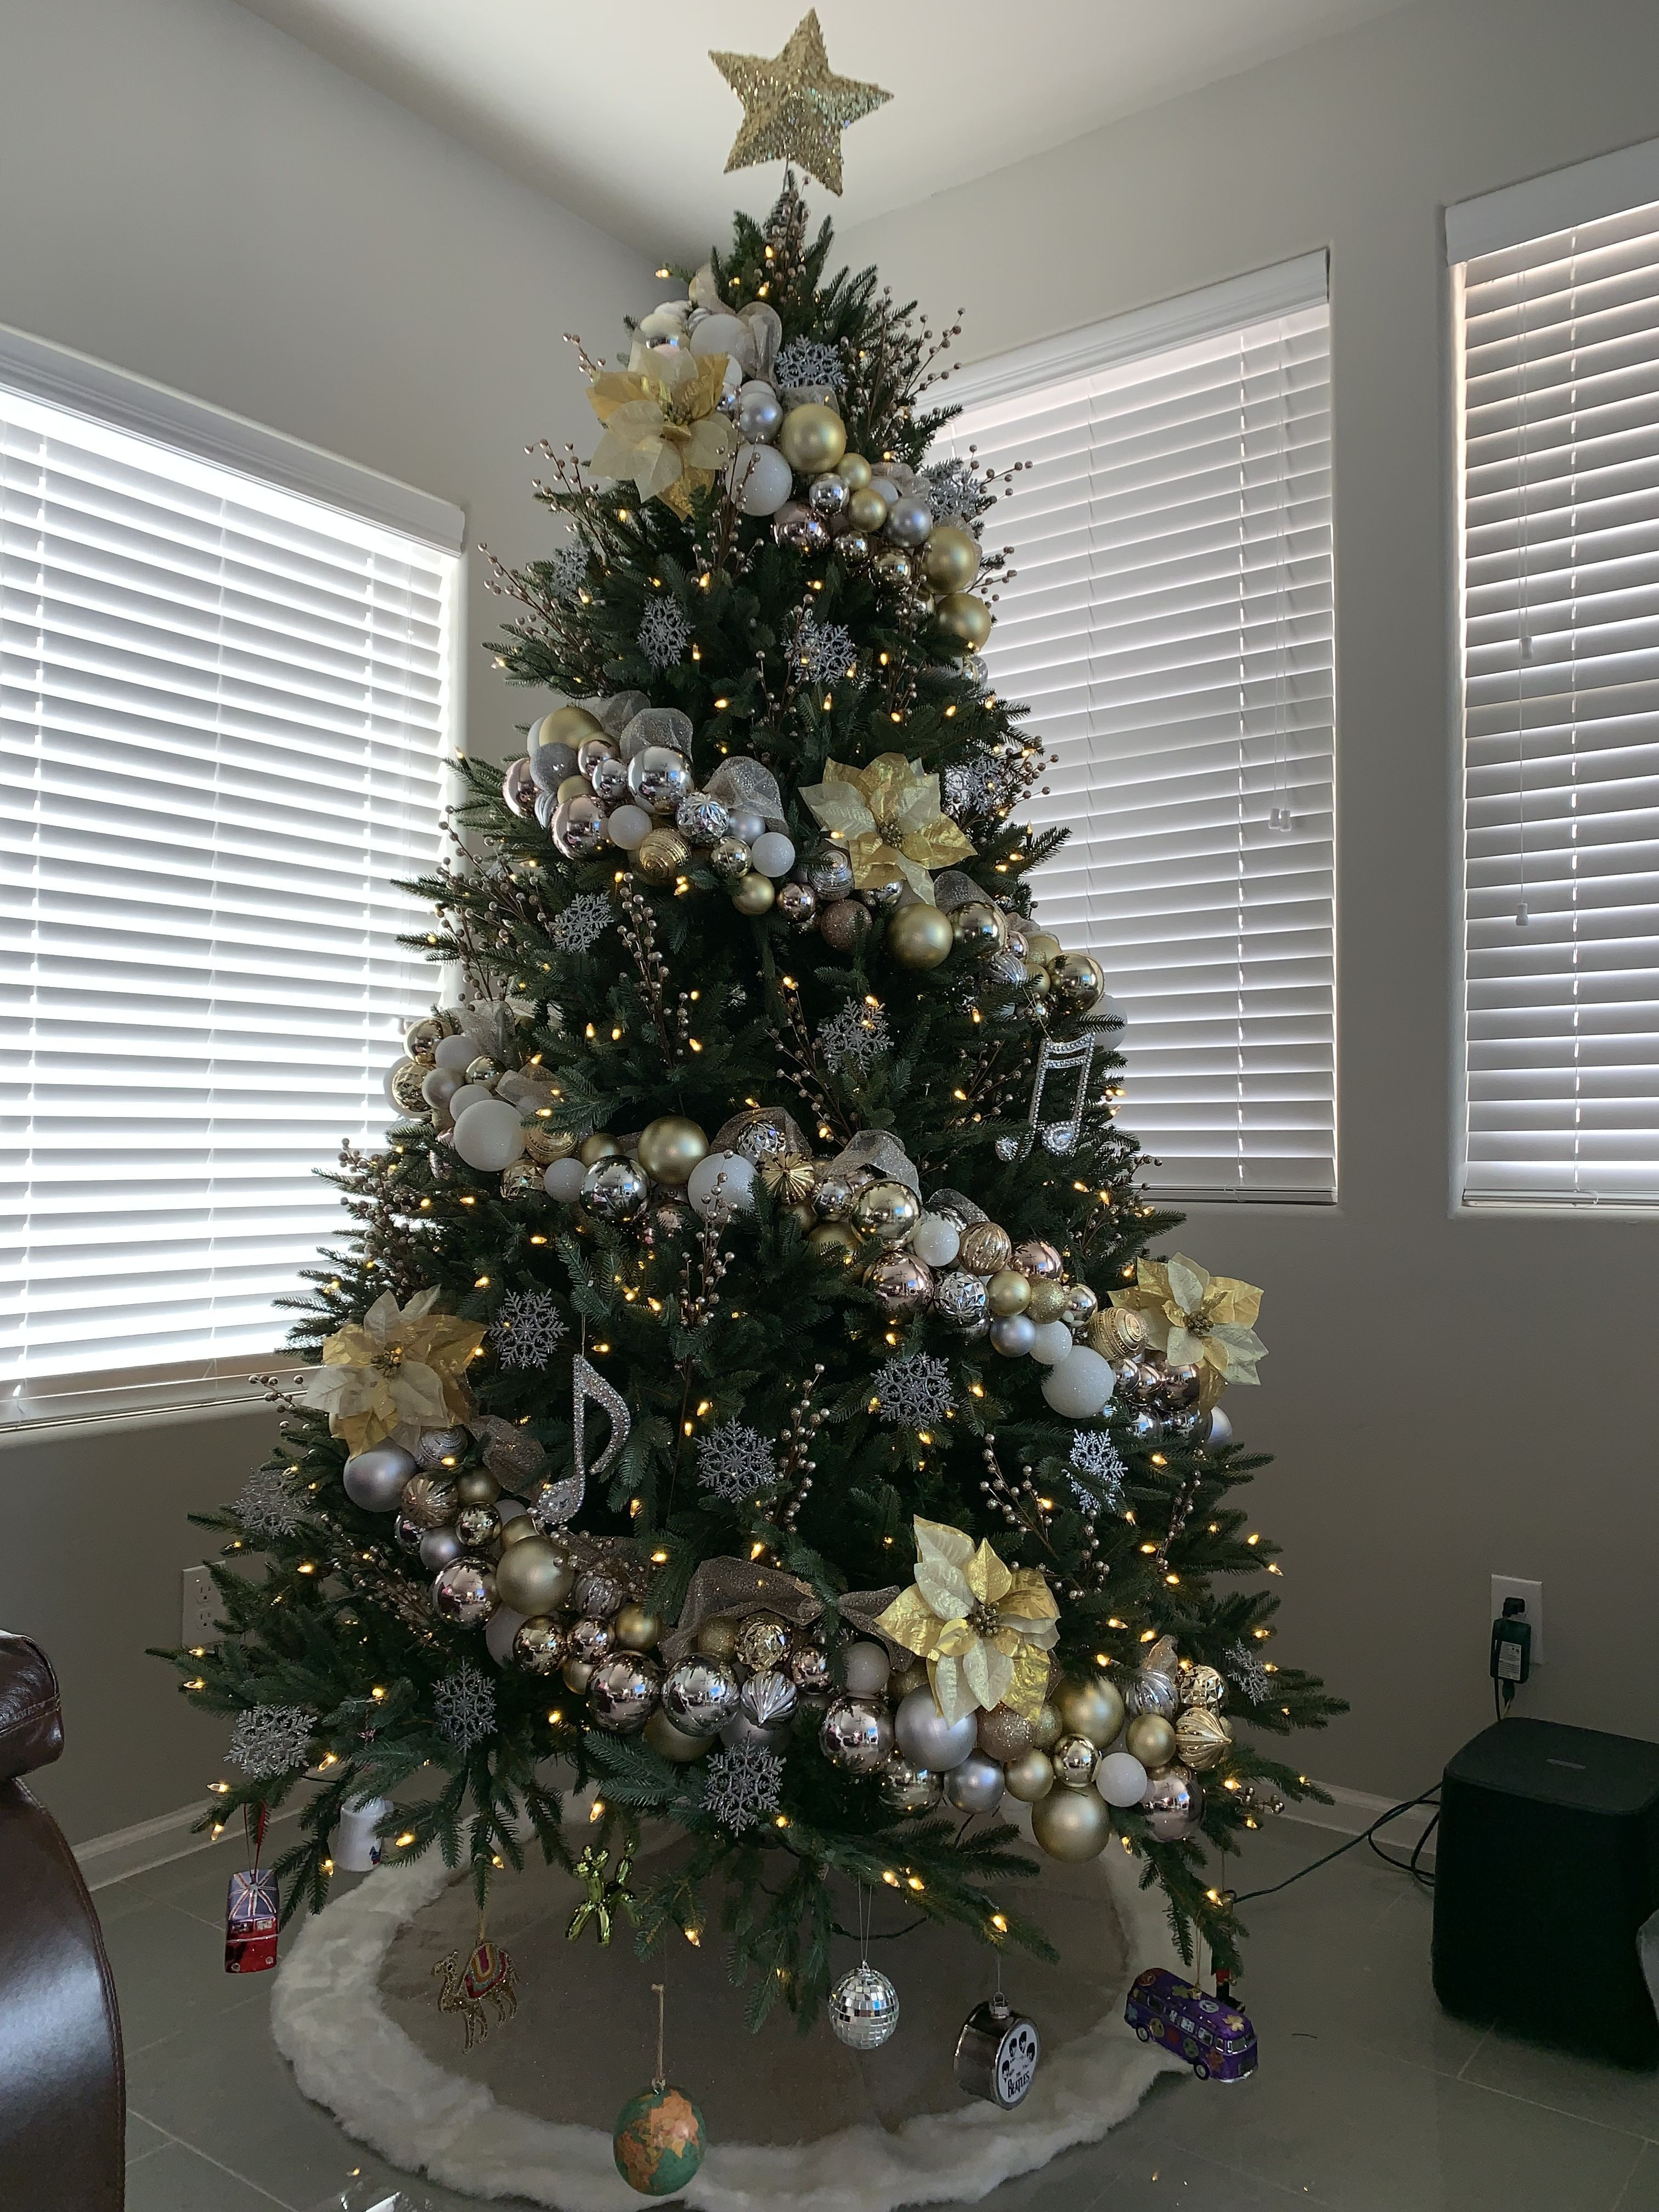 Pin by Heather Chandler on Christmas Holiday decor in